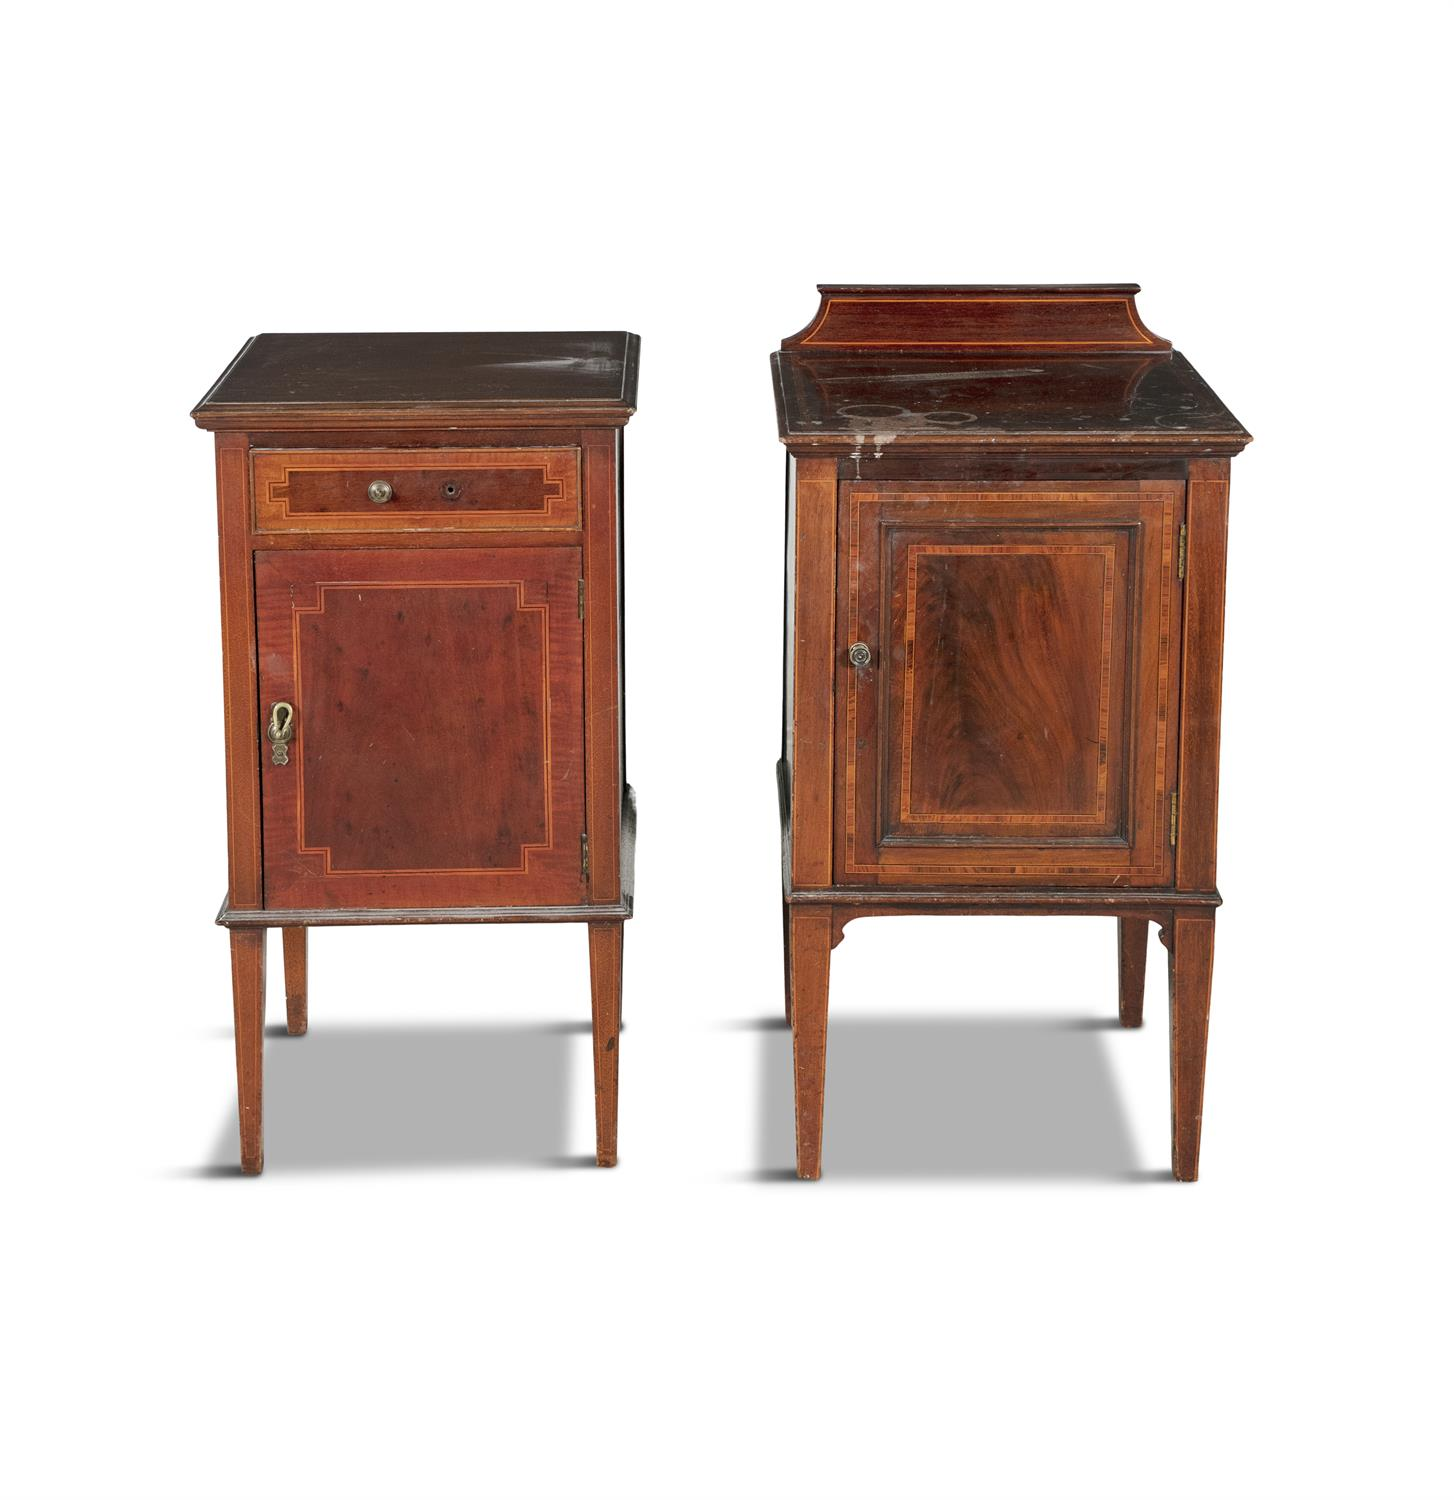 A PAIR OF 19TH CENTURY COMPACT MAHOGANY LOCKERS, in the form of miniature cabinets on stand, - Image 3 of 4